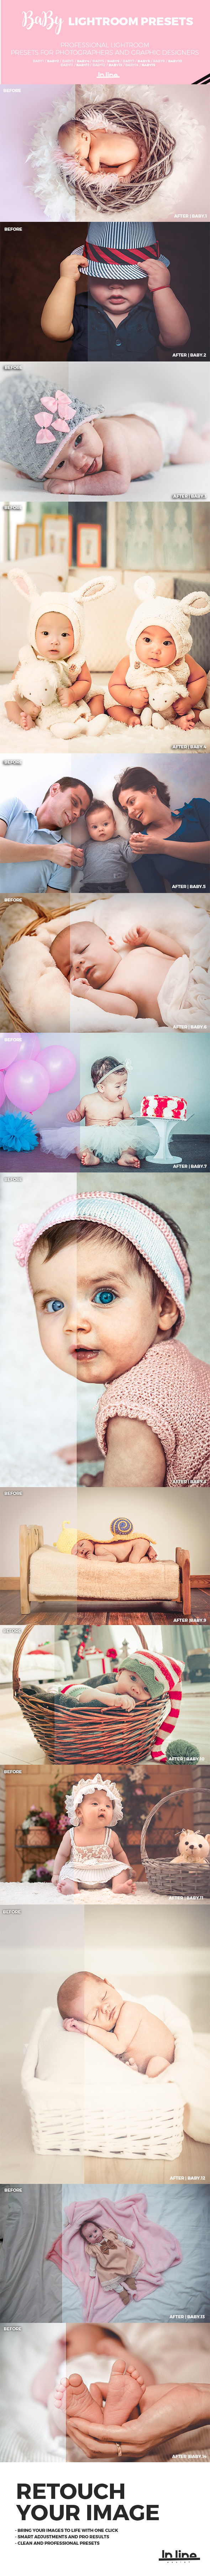 15 Baby Lightroom Presets - Portrait Lightroom Presets